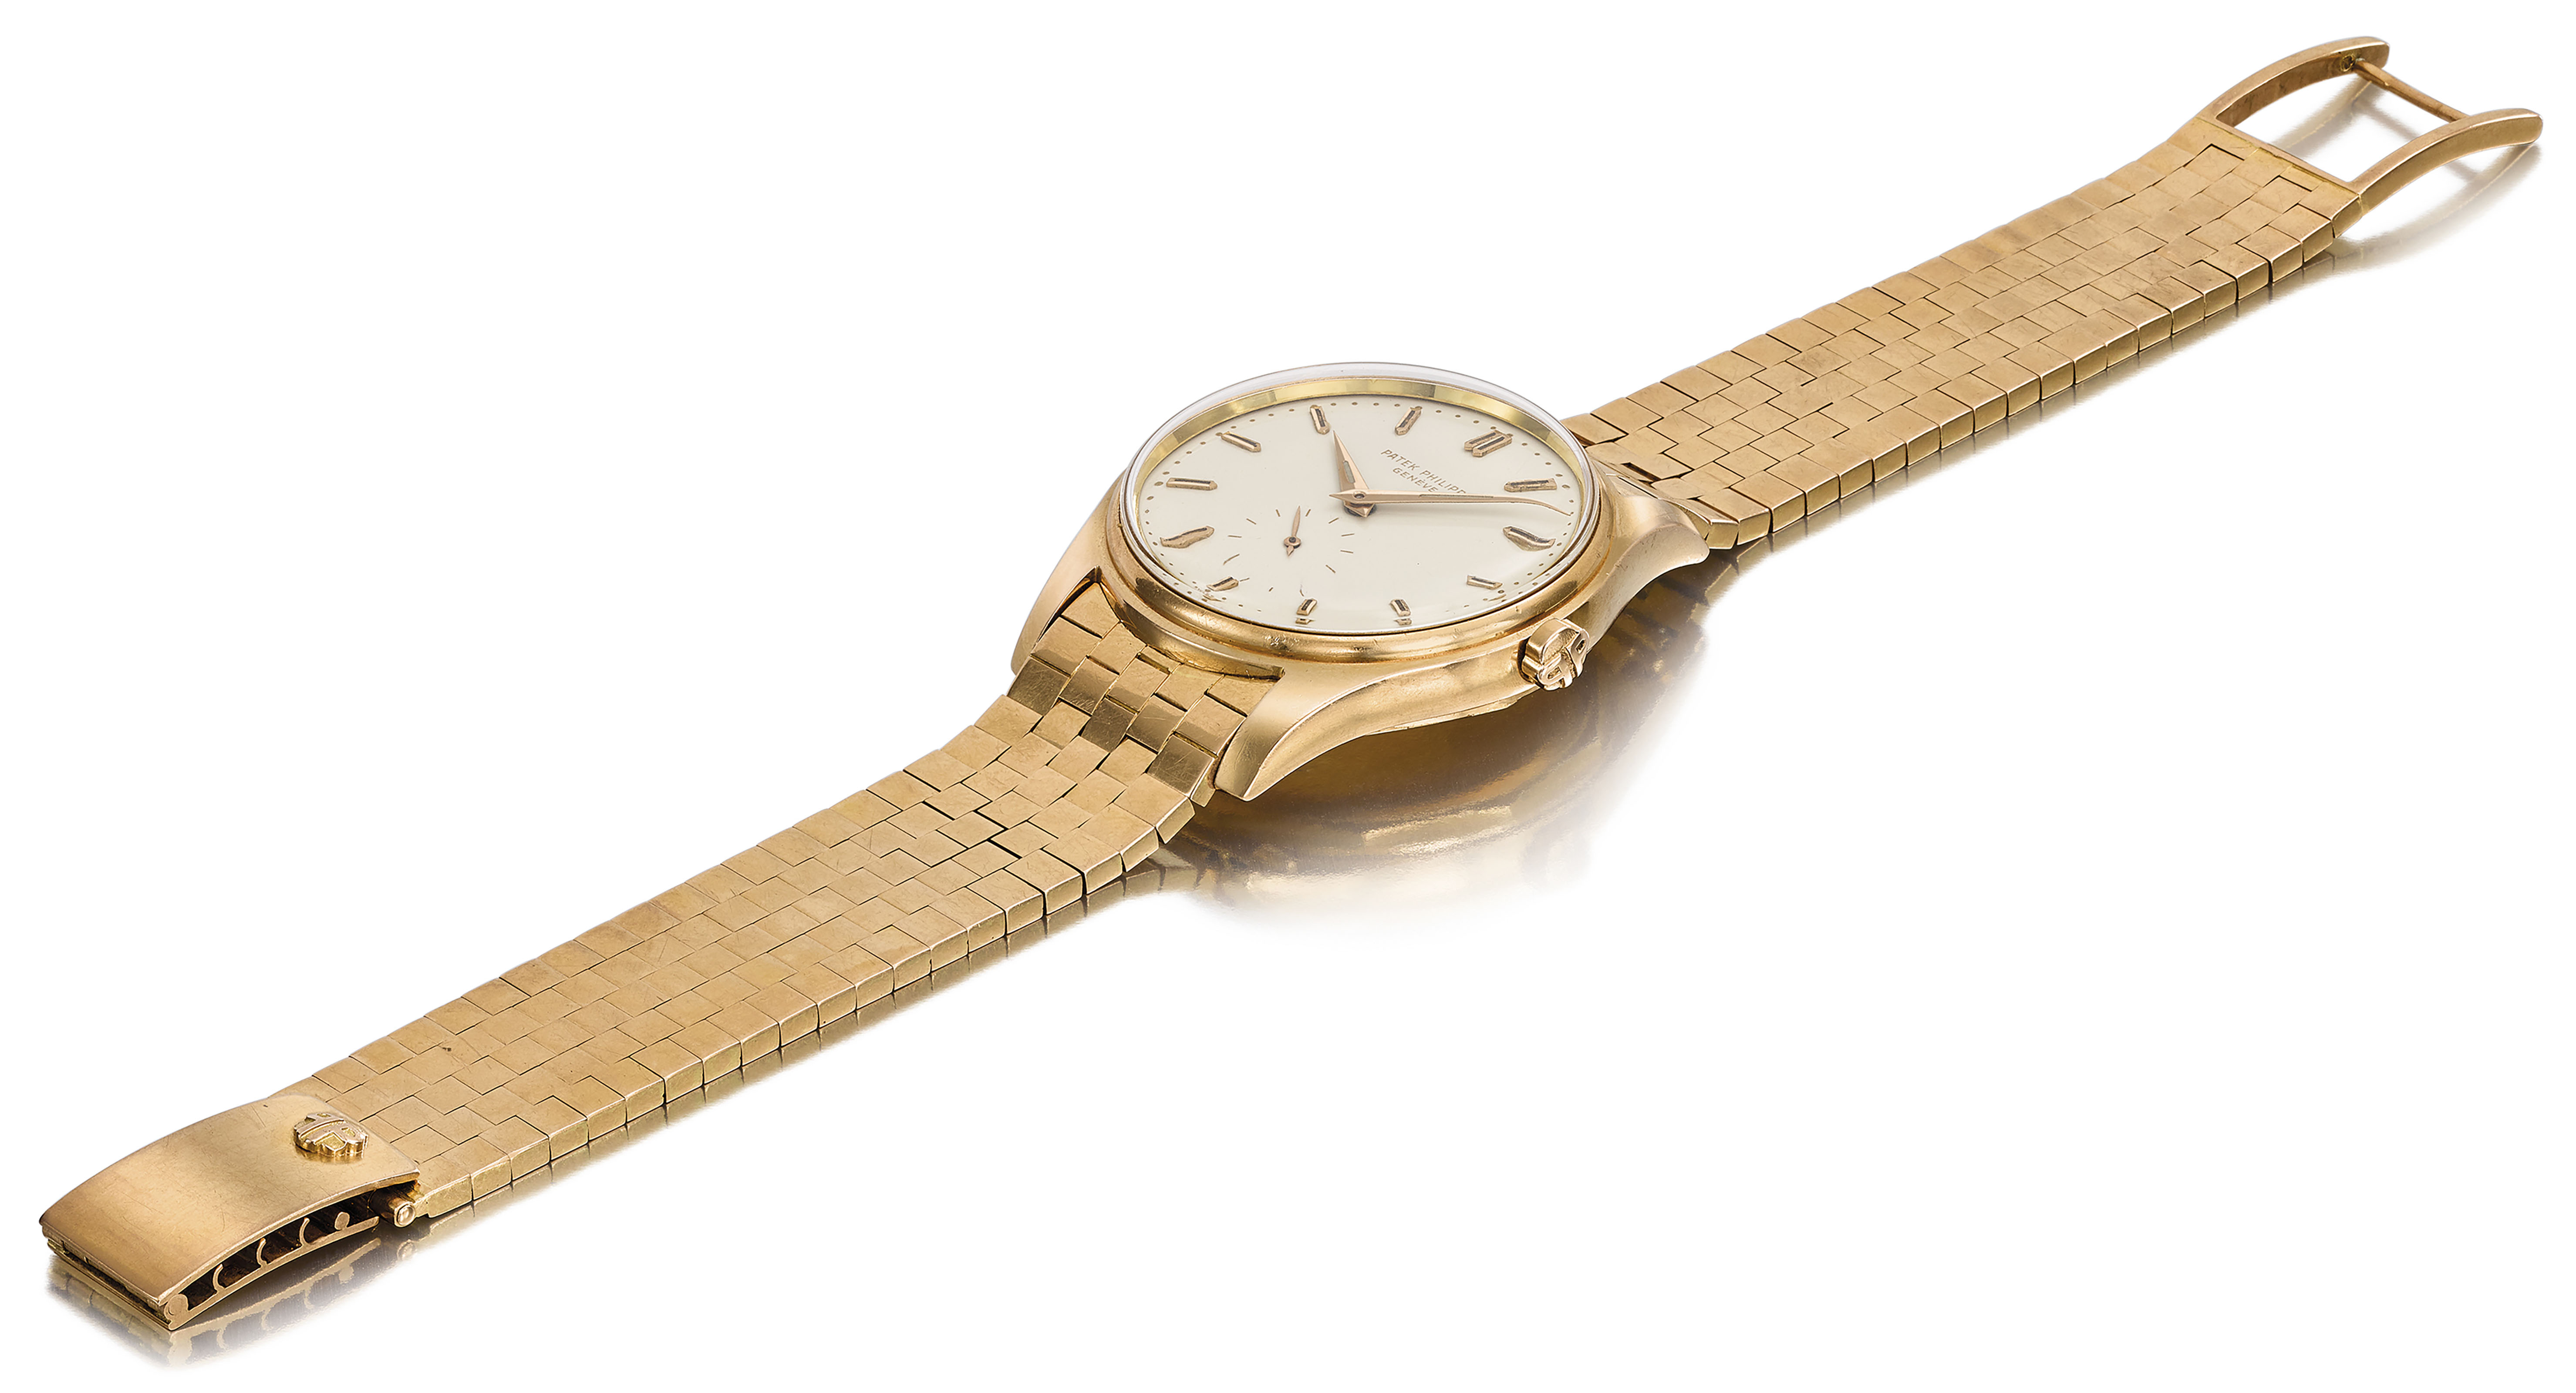 PATEK PHILIPPE. AN EXTREMLY RARE AND ATTRACTIVE 18K PINK GOLD AUTOMATIC WRISTWATCH WITH CREAM-COLOURED ENAMEL DIAL, LUMINOUS INDEXES AND HANDS AND ORIGINAL PINK GOLD GAY FRERES BRACELET